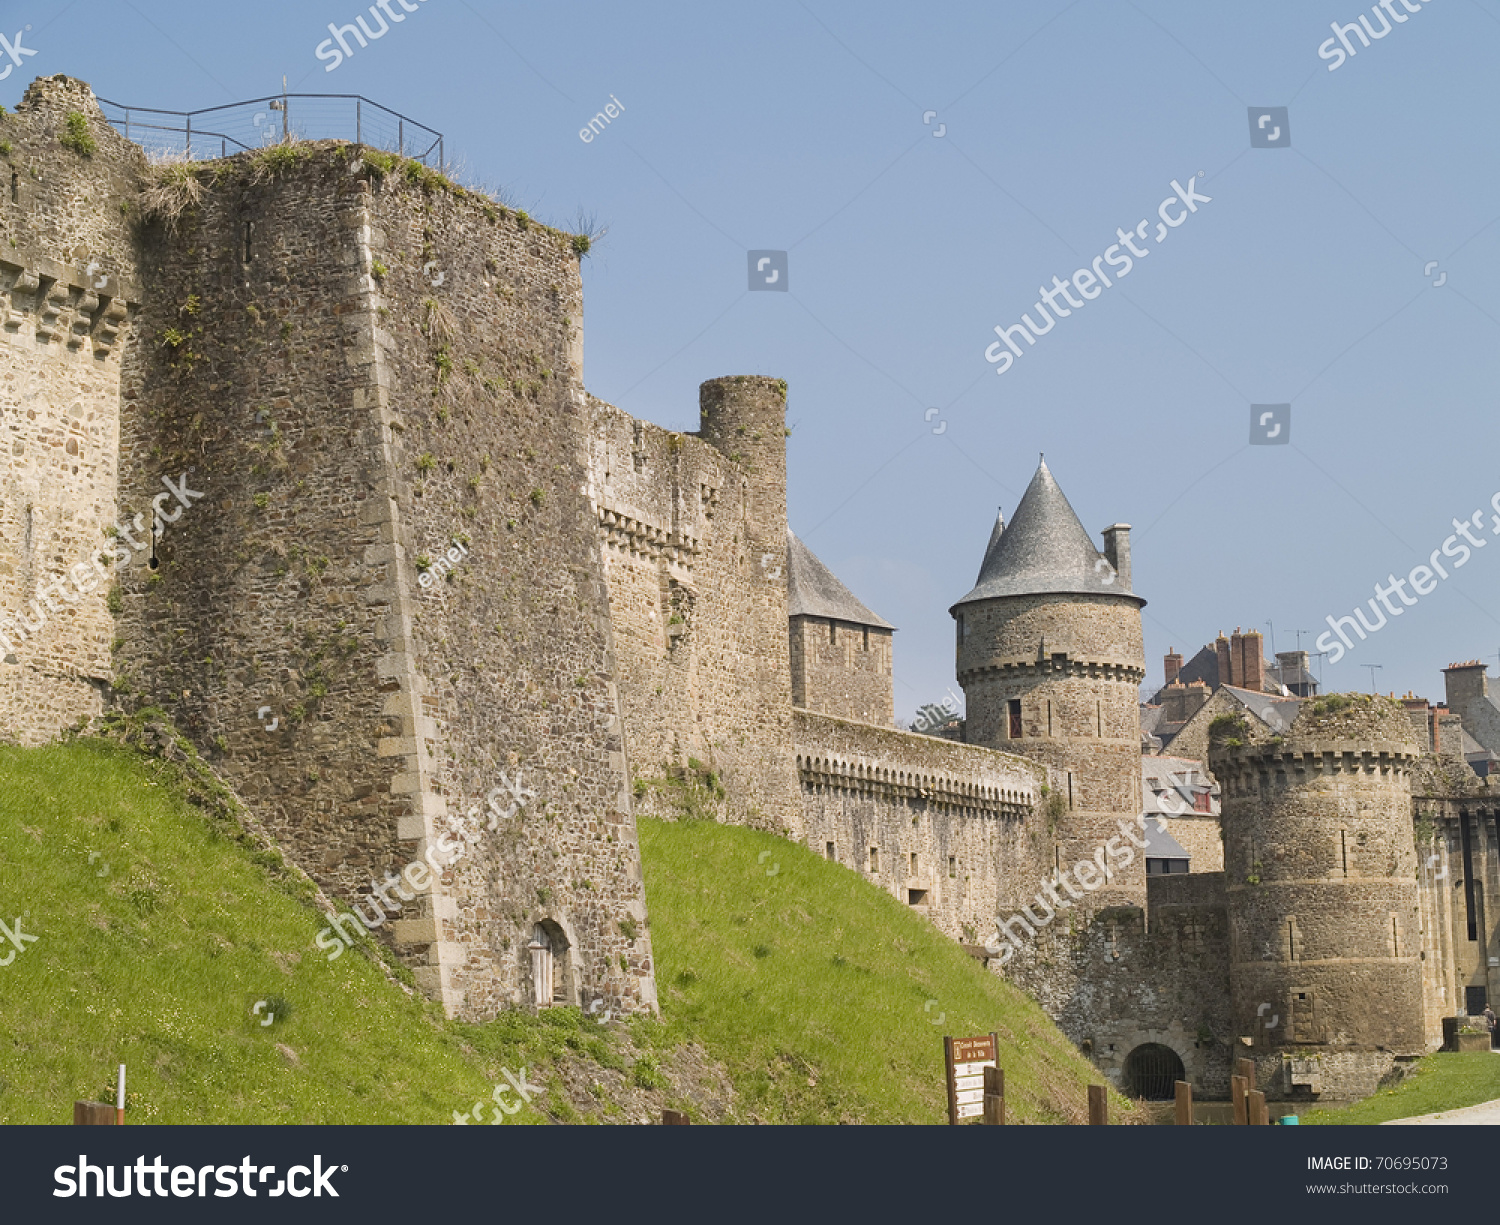 Fougeres is a small medieval town located in brittany france